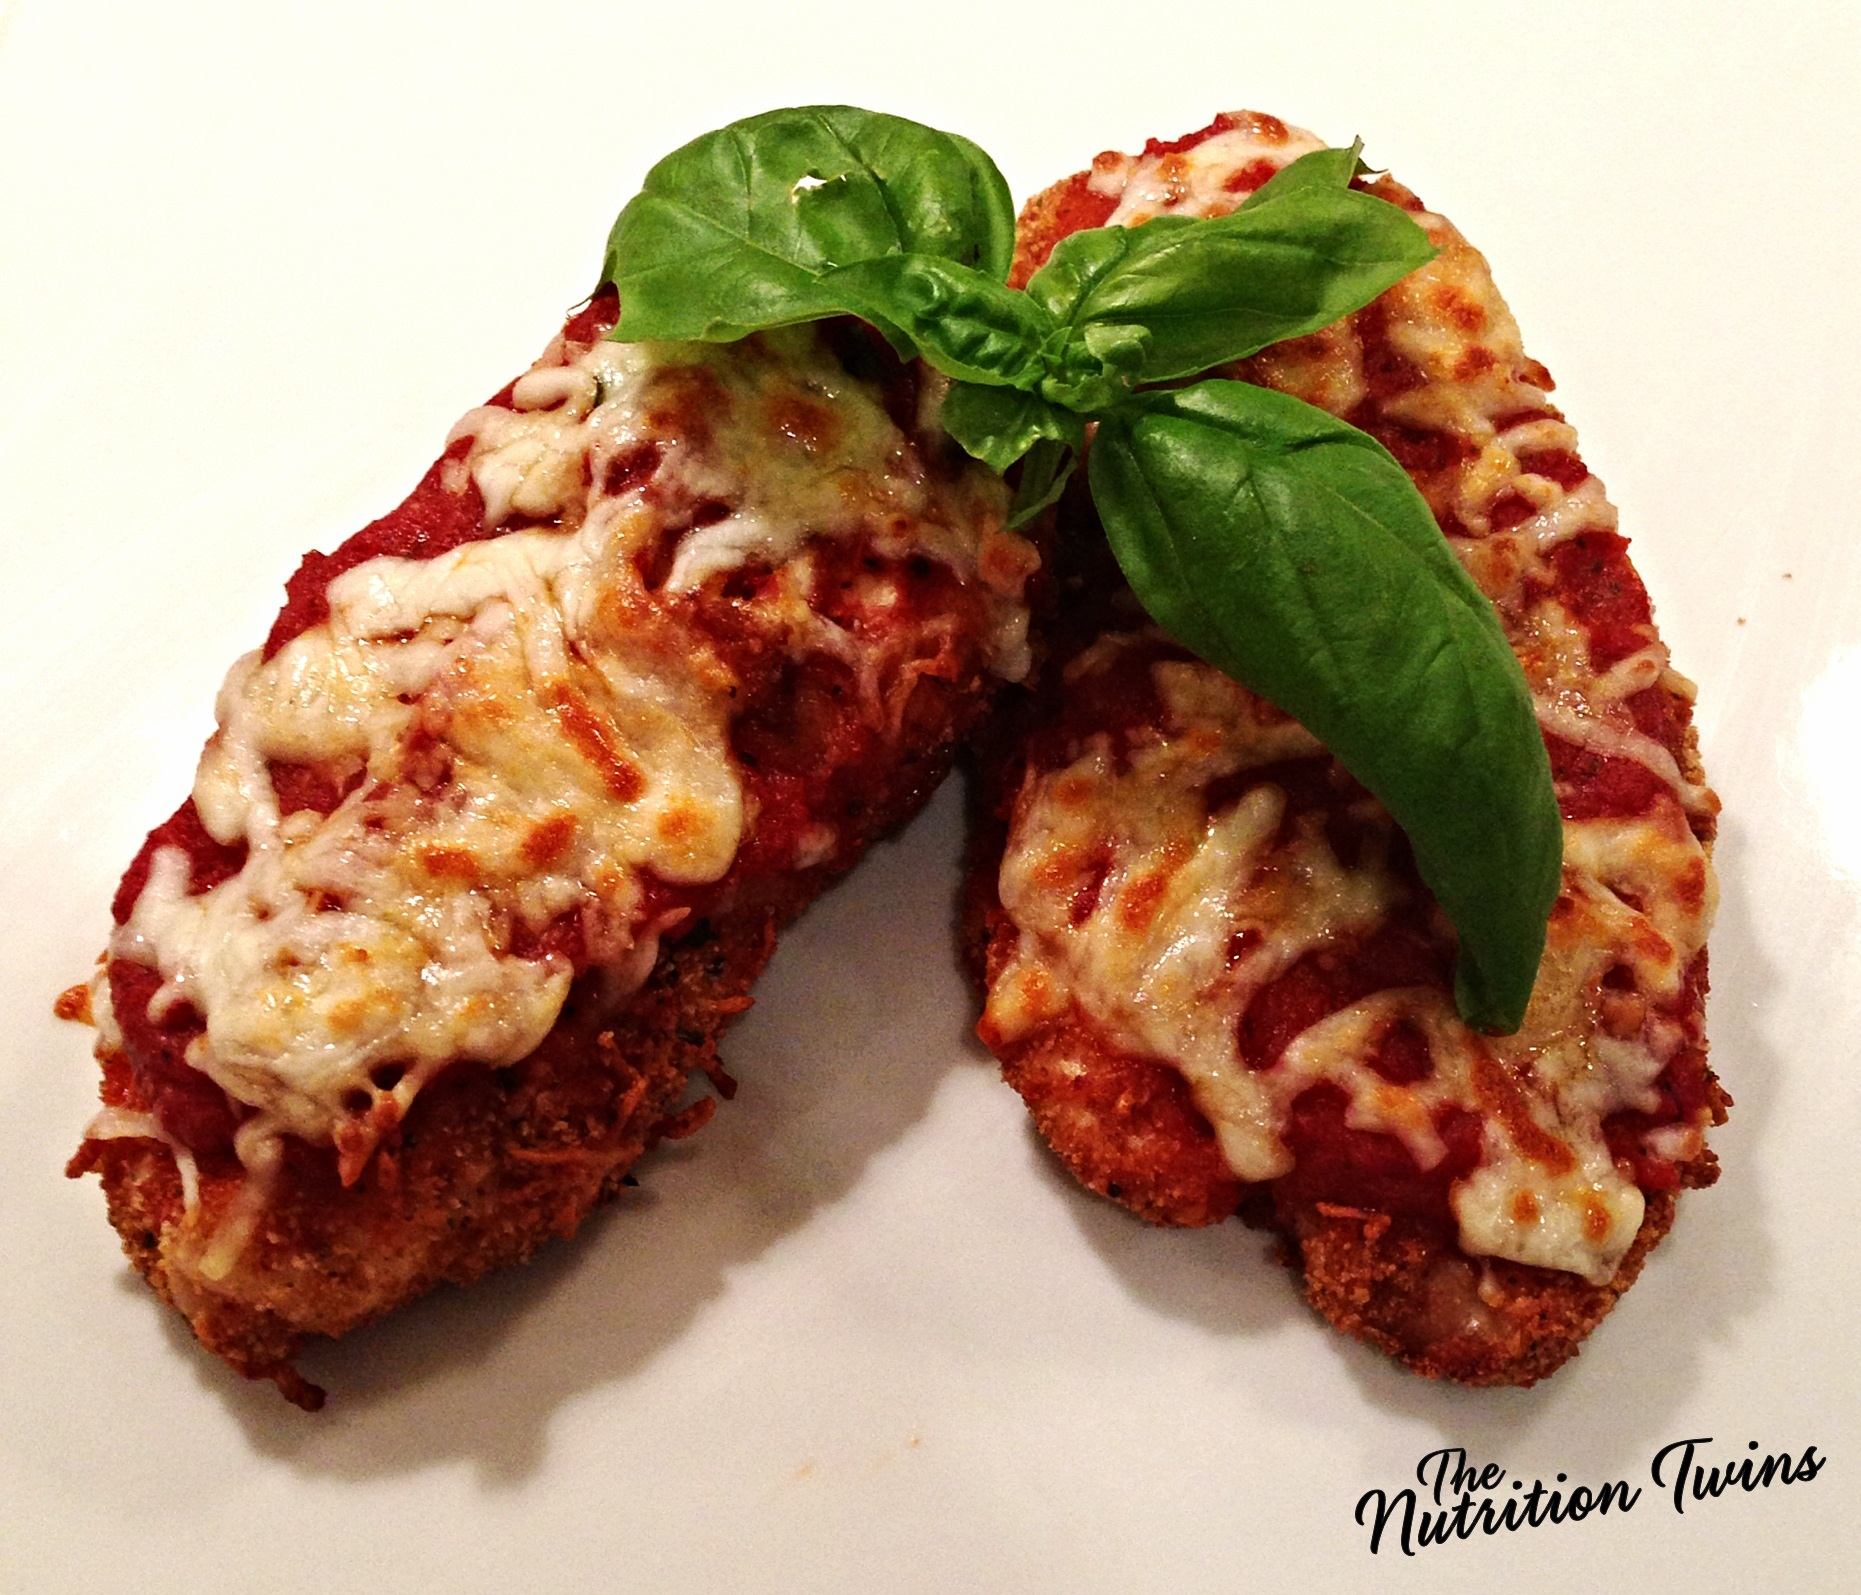 Crispy Chicken Parmesan Nutrition Twins